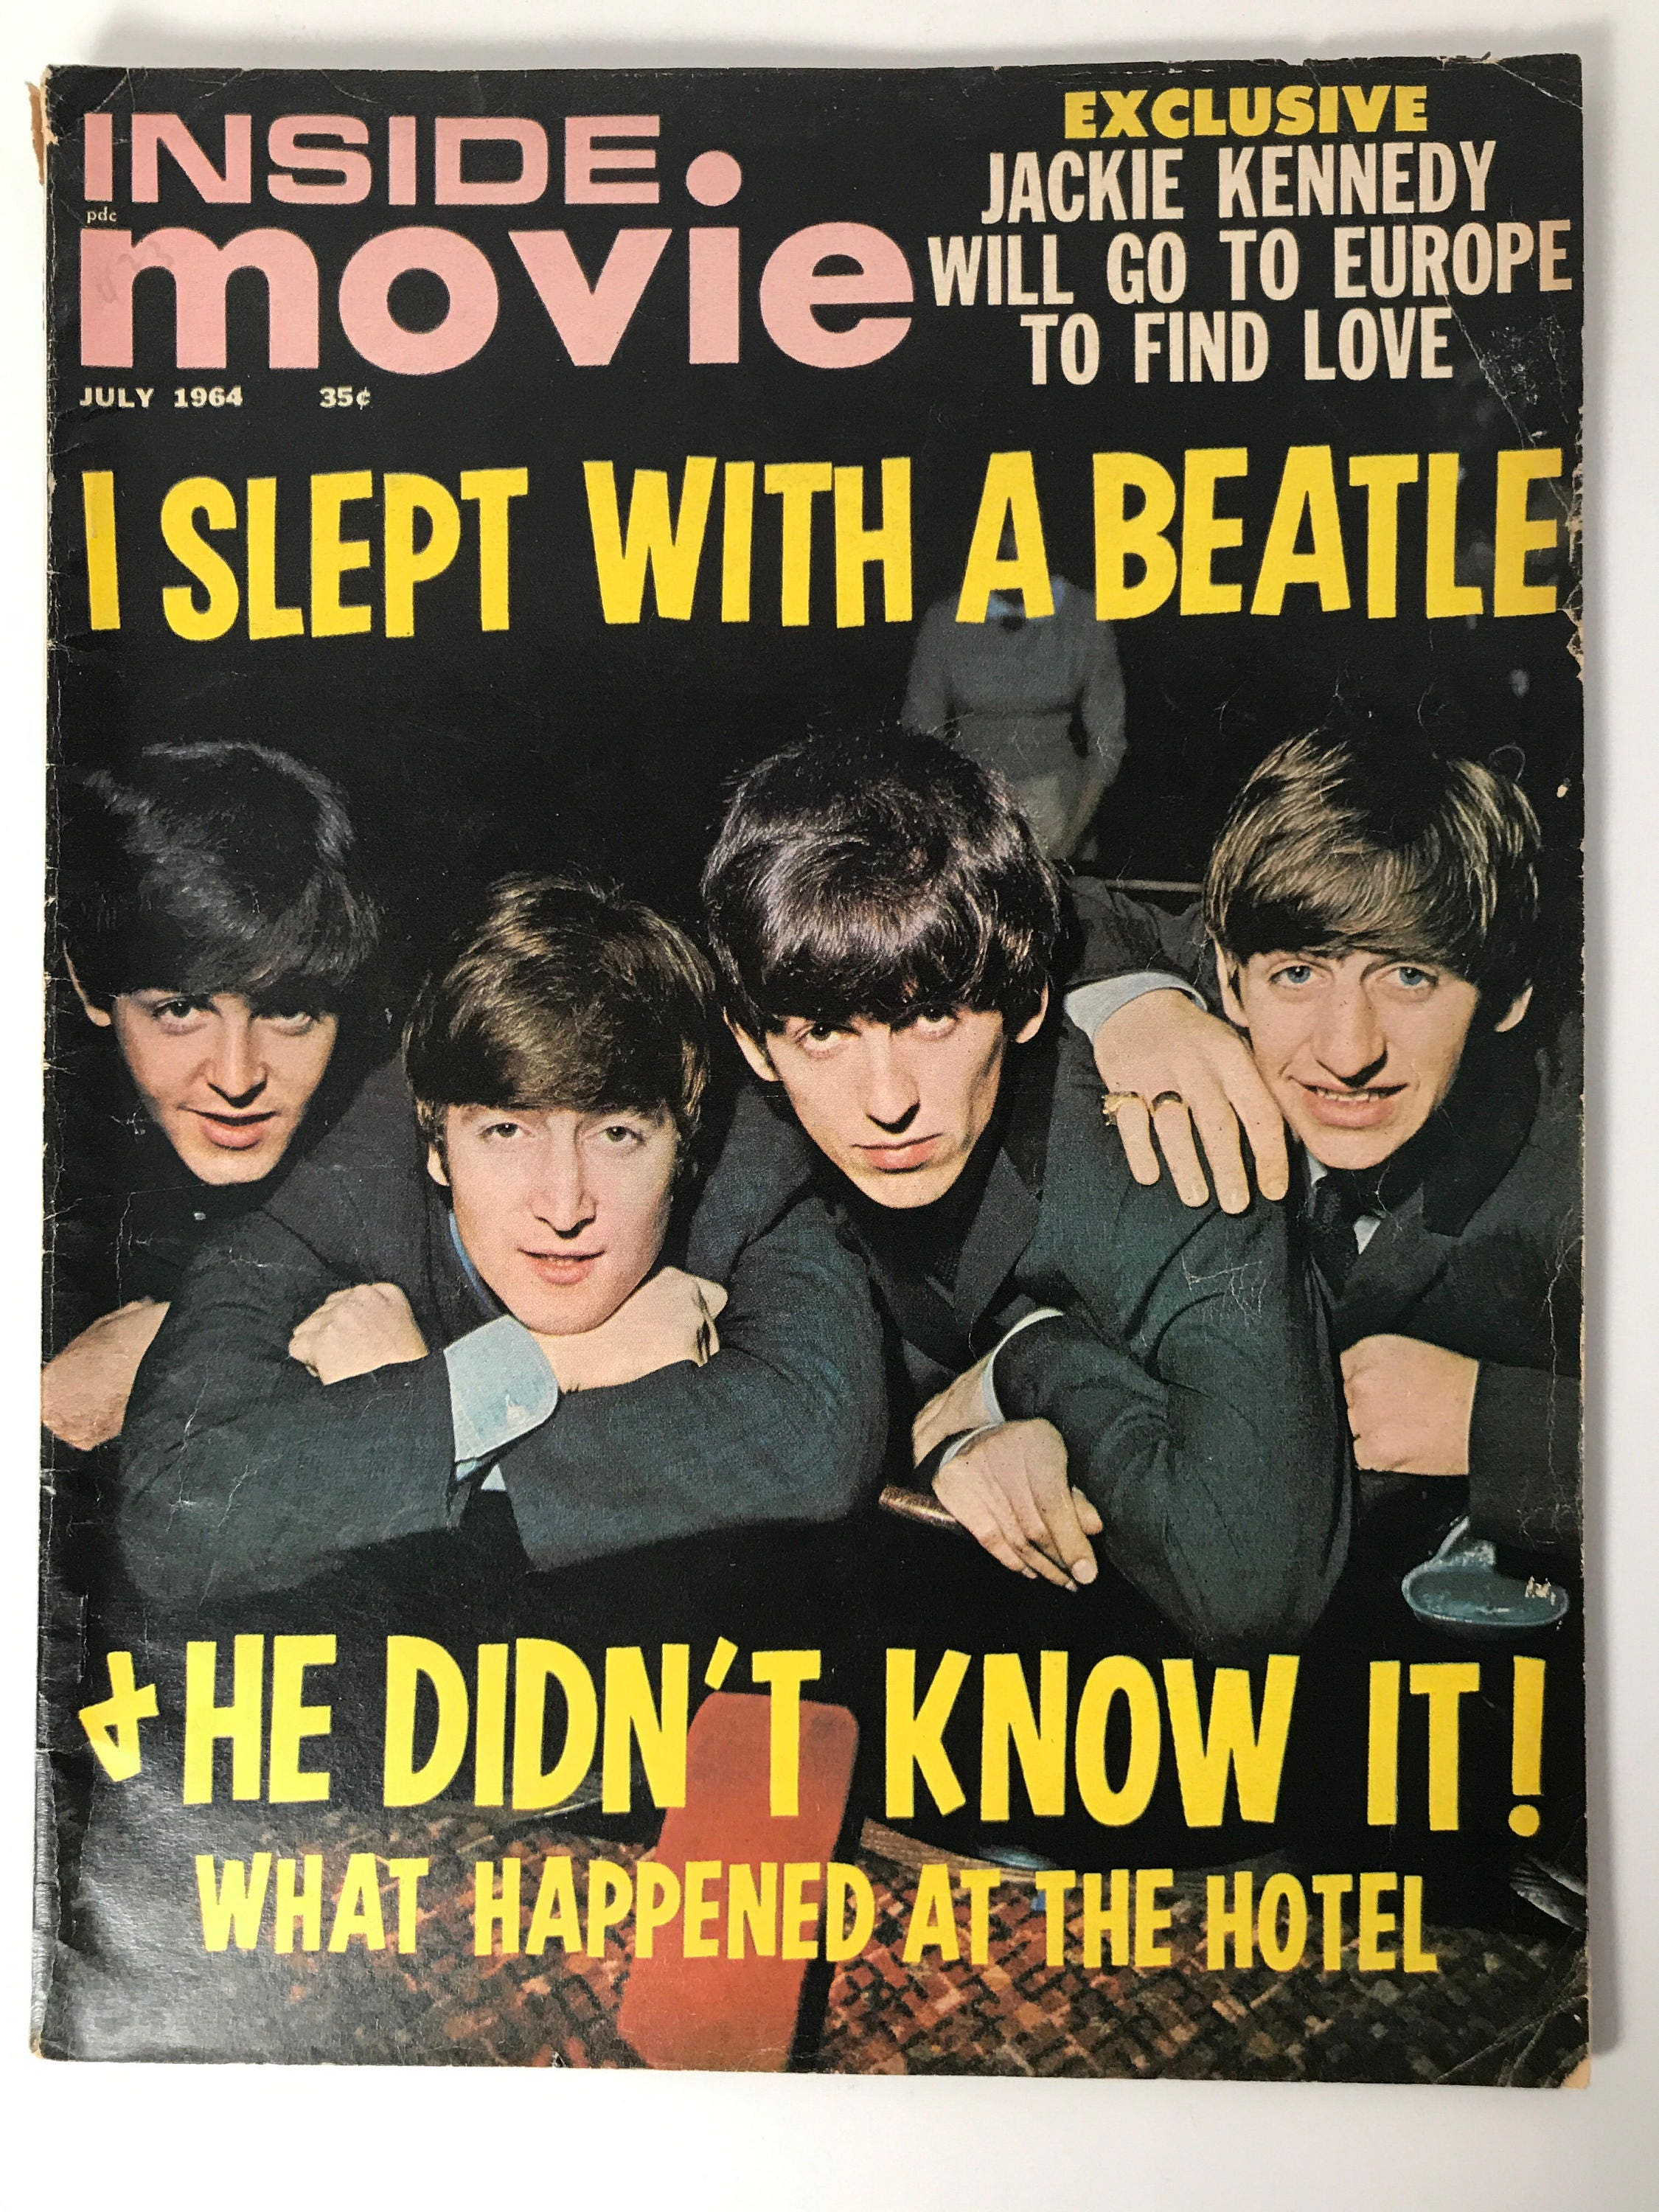 Vintage Inside Movie Magazine July 1964 - Cover The Beatles - I Slept